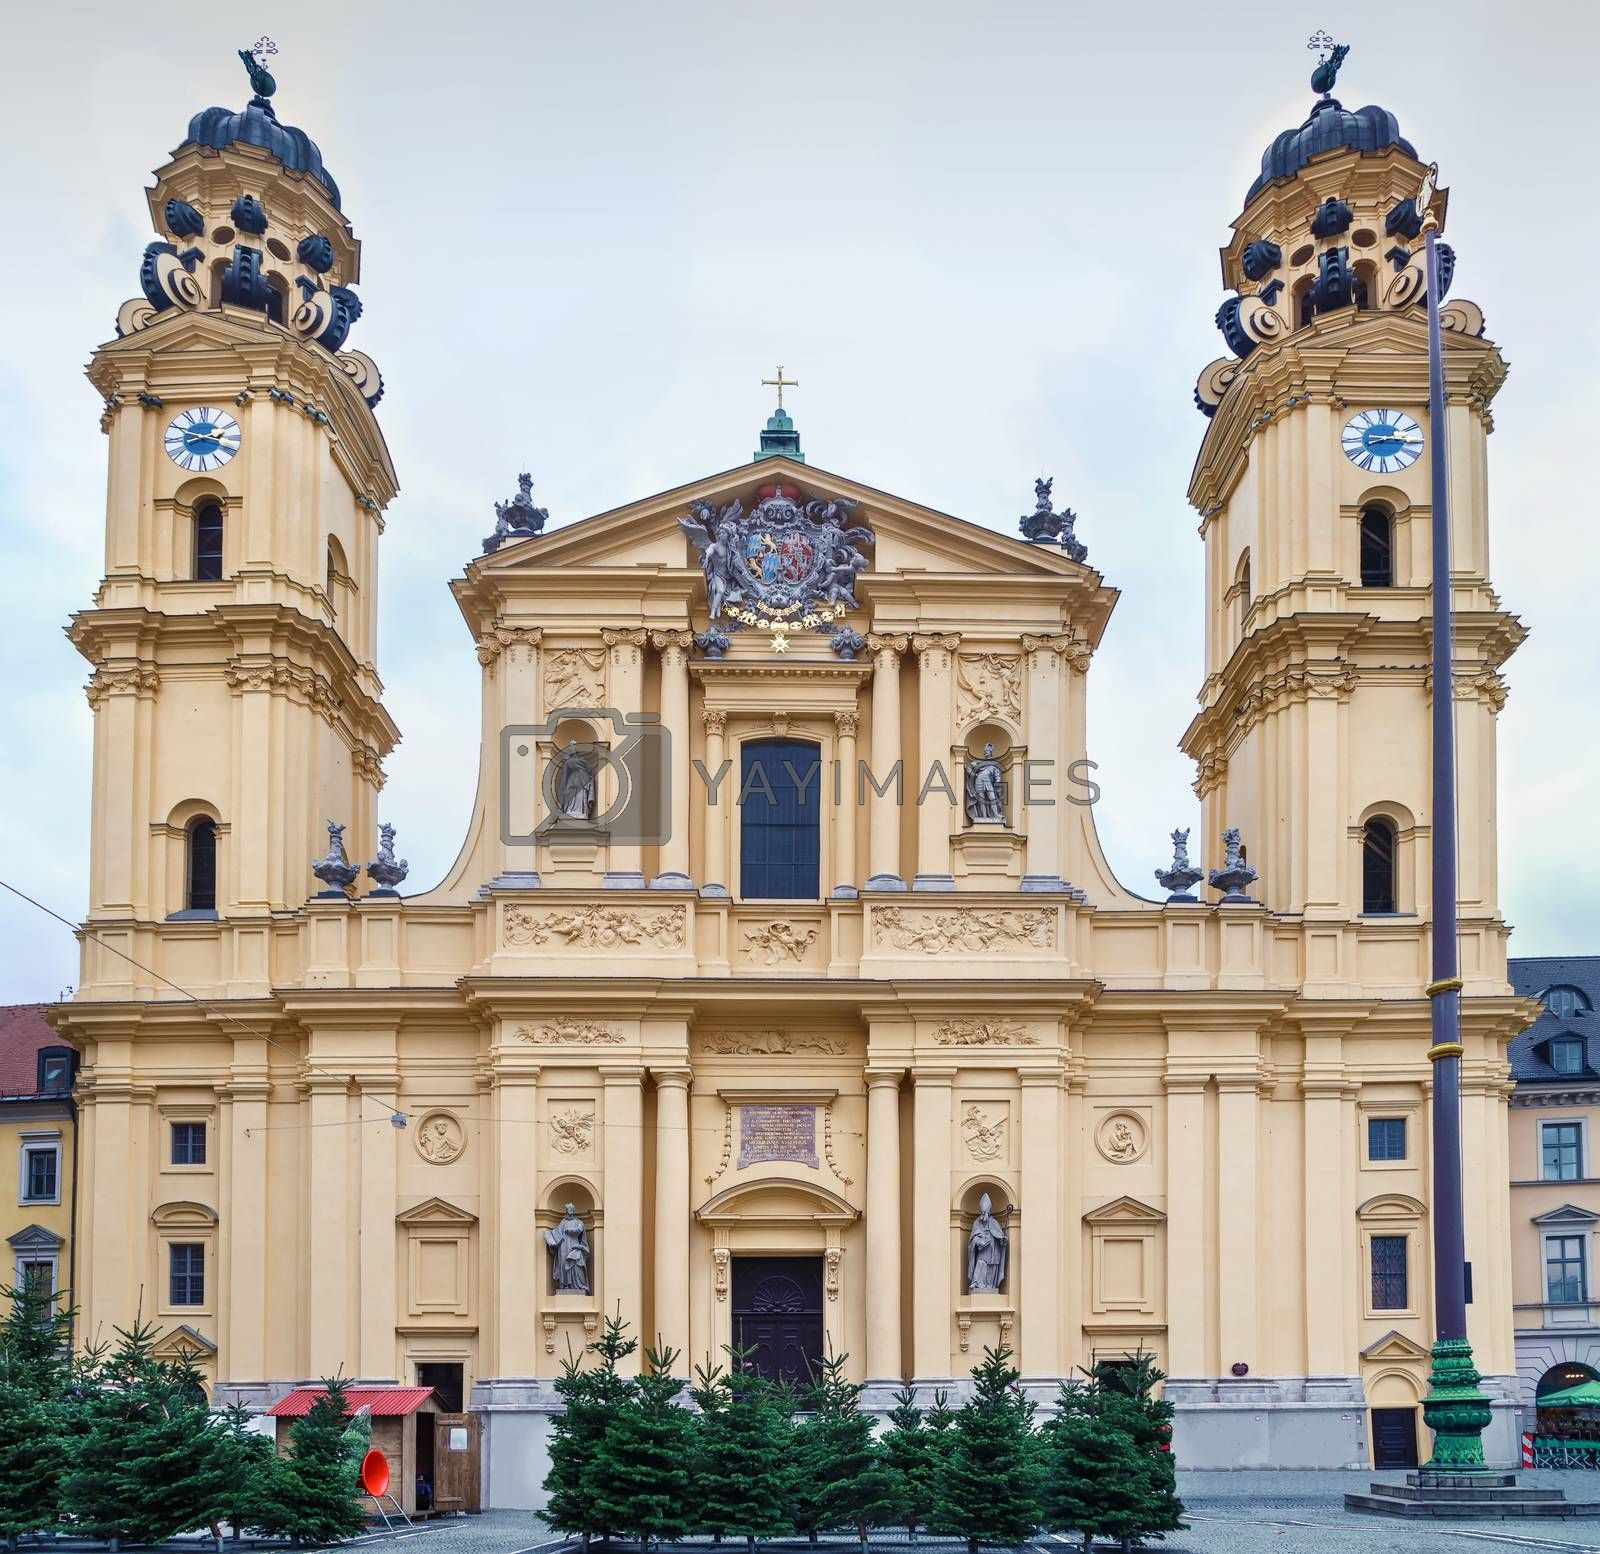 Theatine Church of St. Cajetan is a Catholic church in Munich, Germany. Built from 1663 to 1690